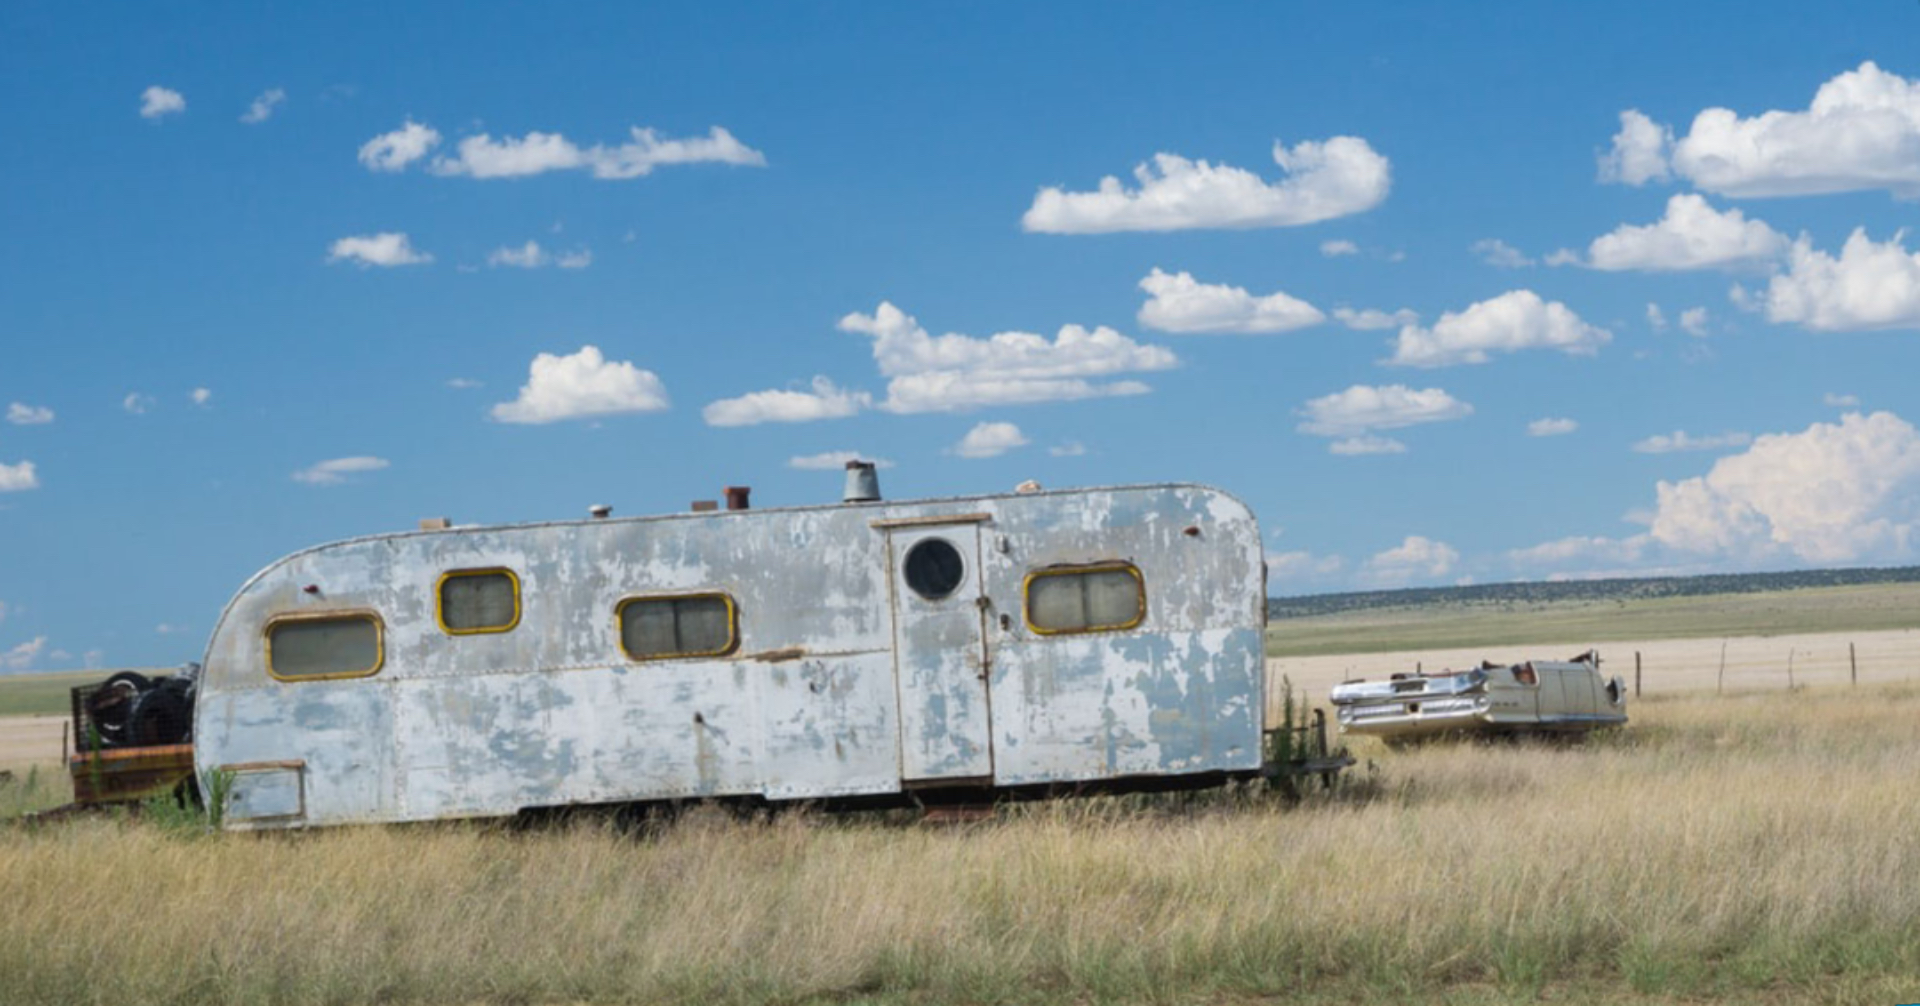 Abandoned travel trailer left in a field to rot.